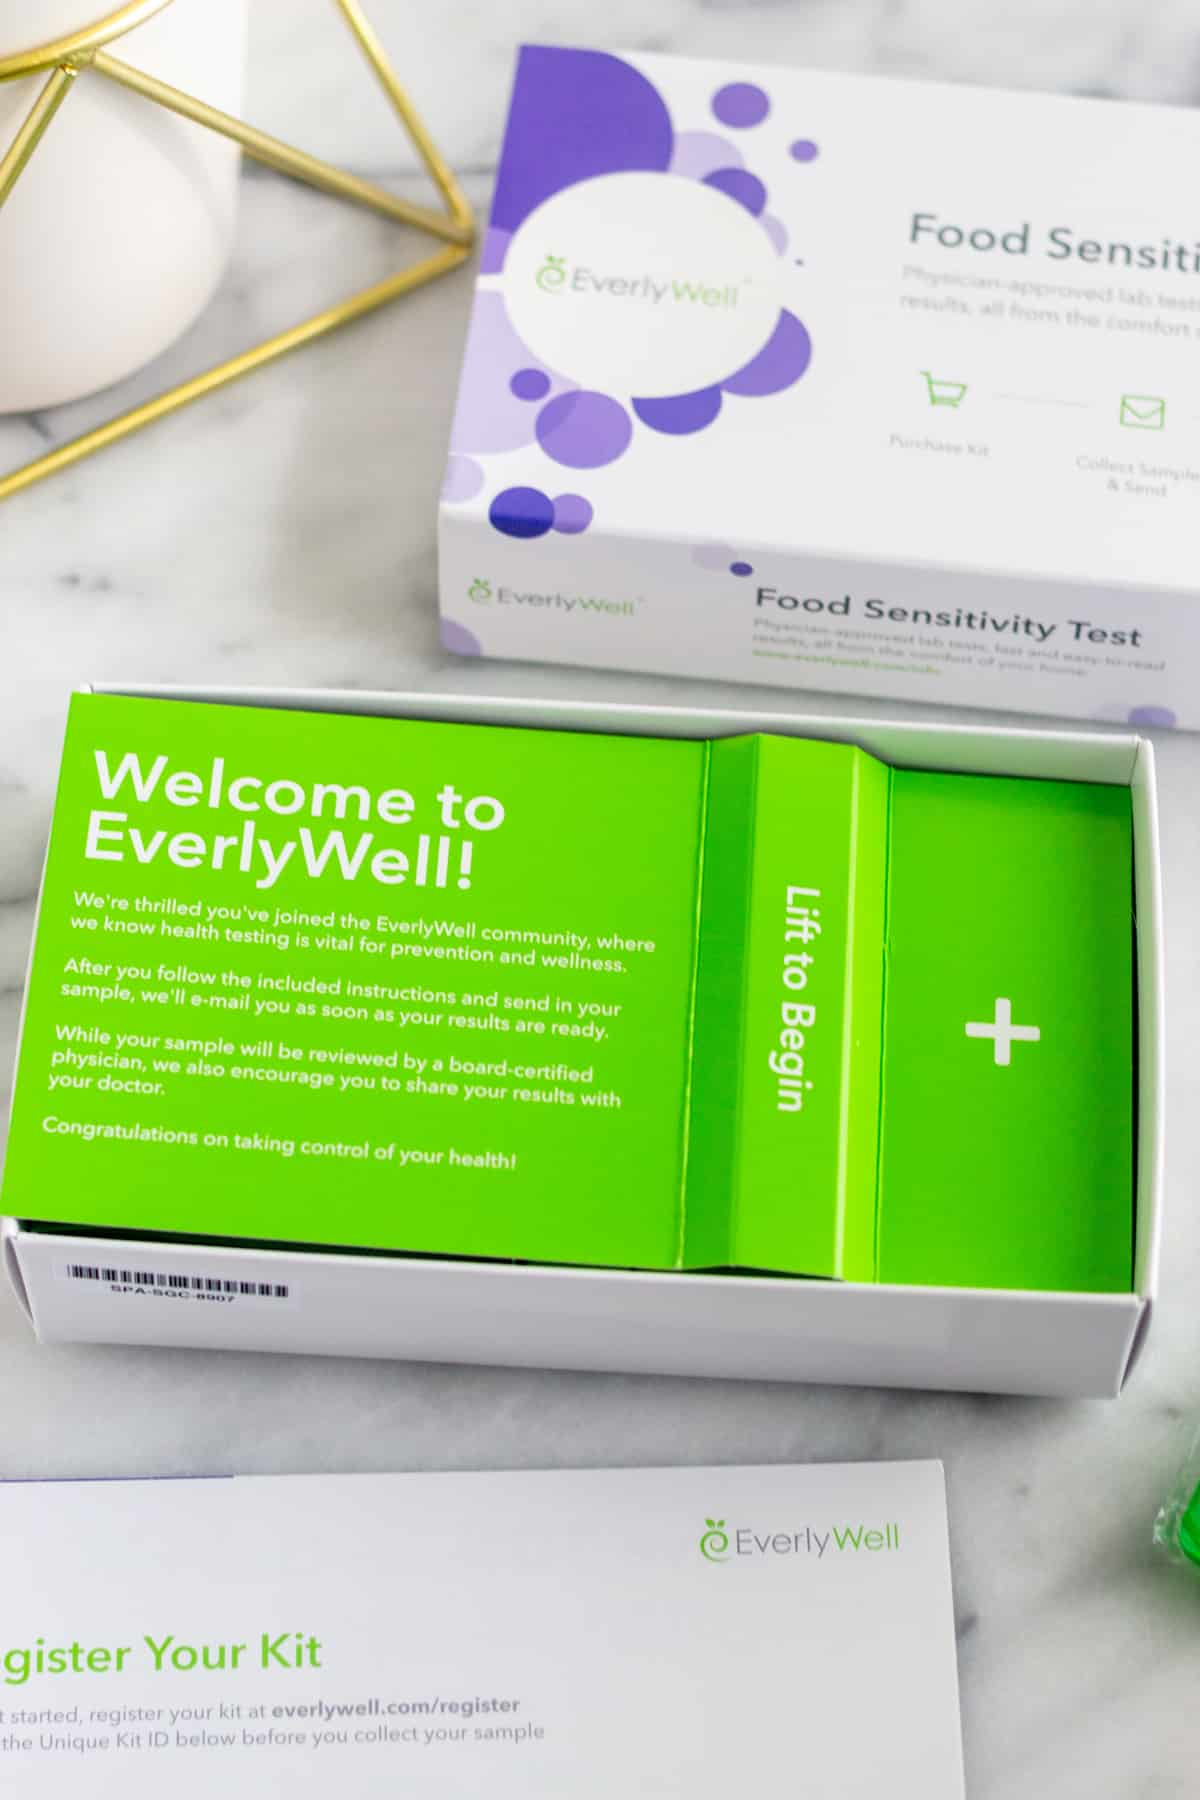 EverlyWell Food Sensitivity test box open on a white counter